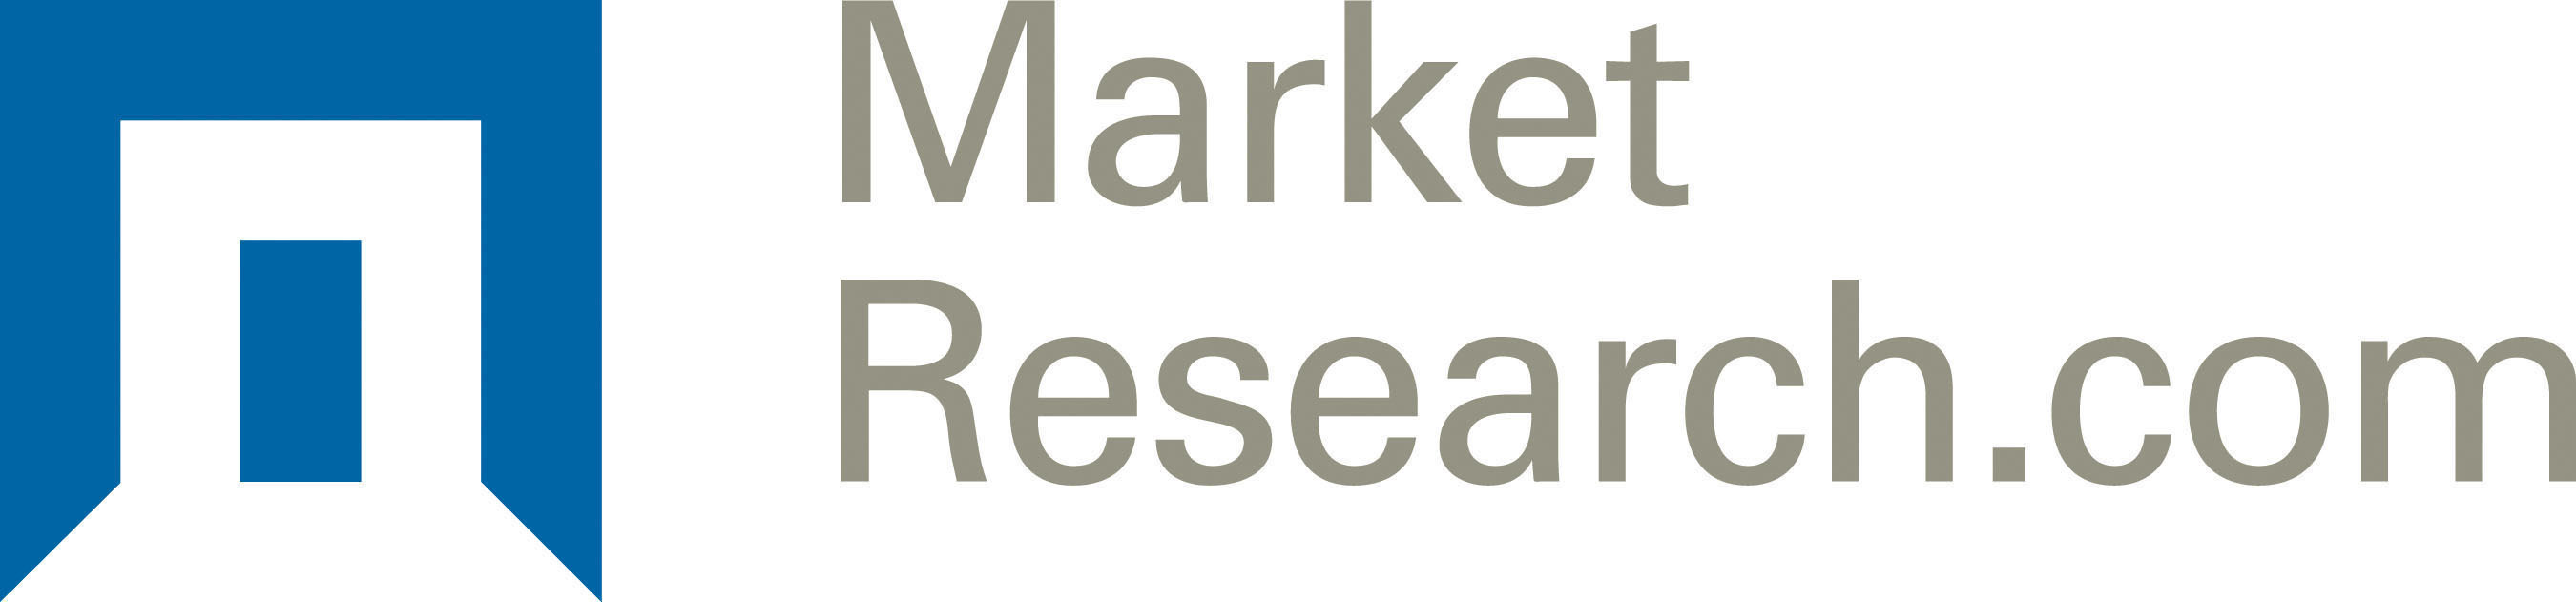 MarketResearch.com Logo